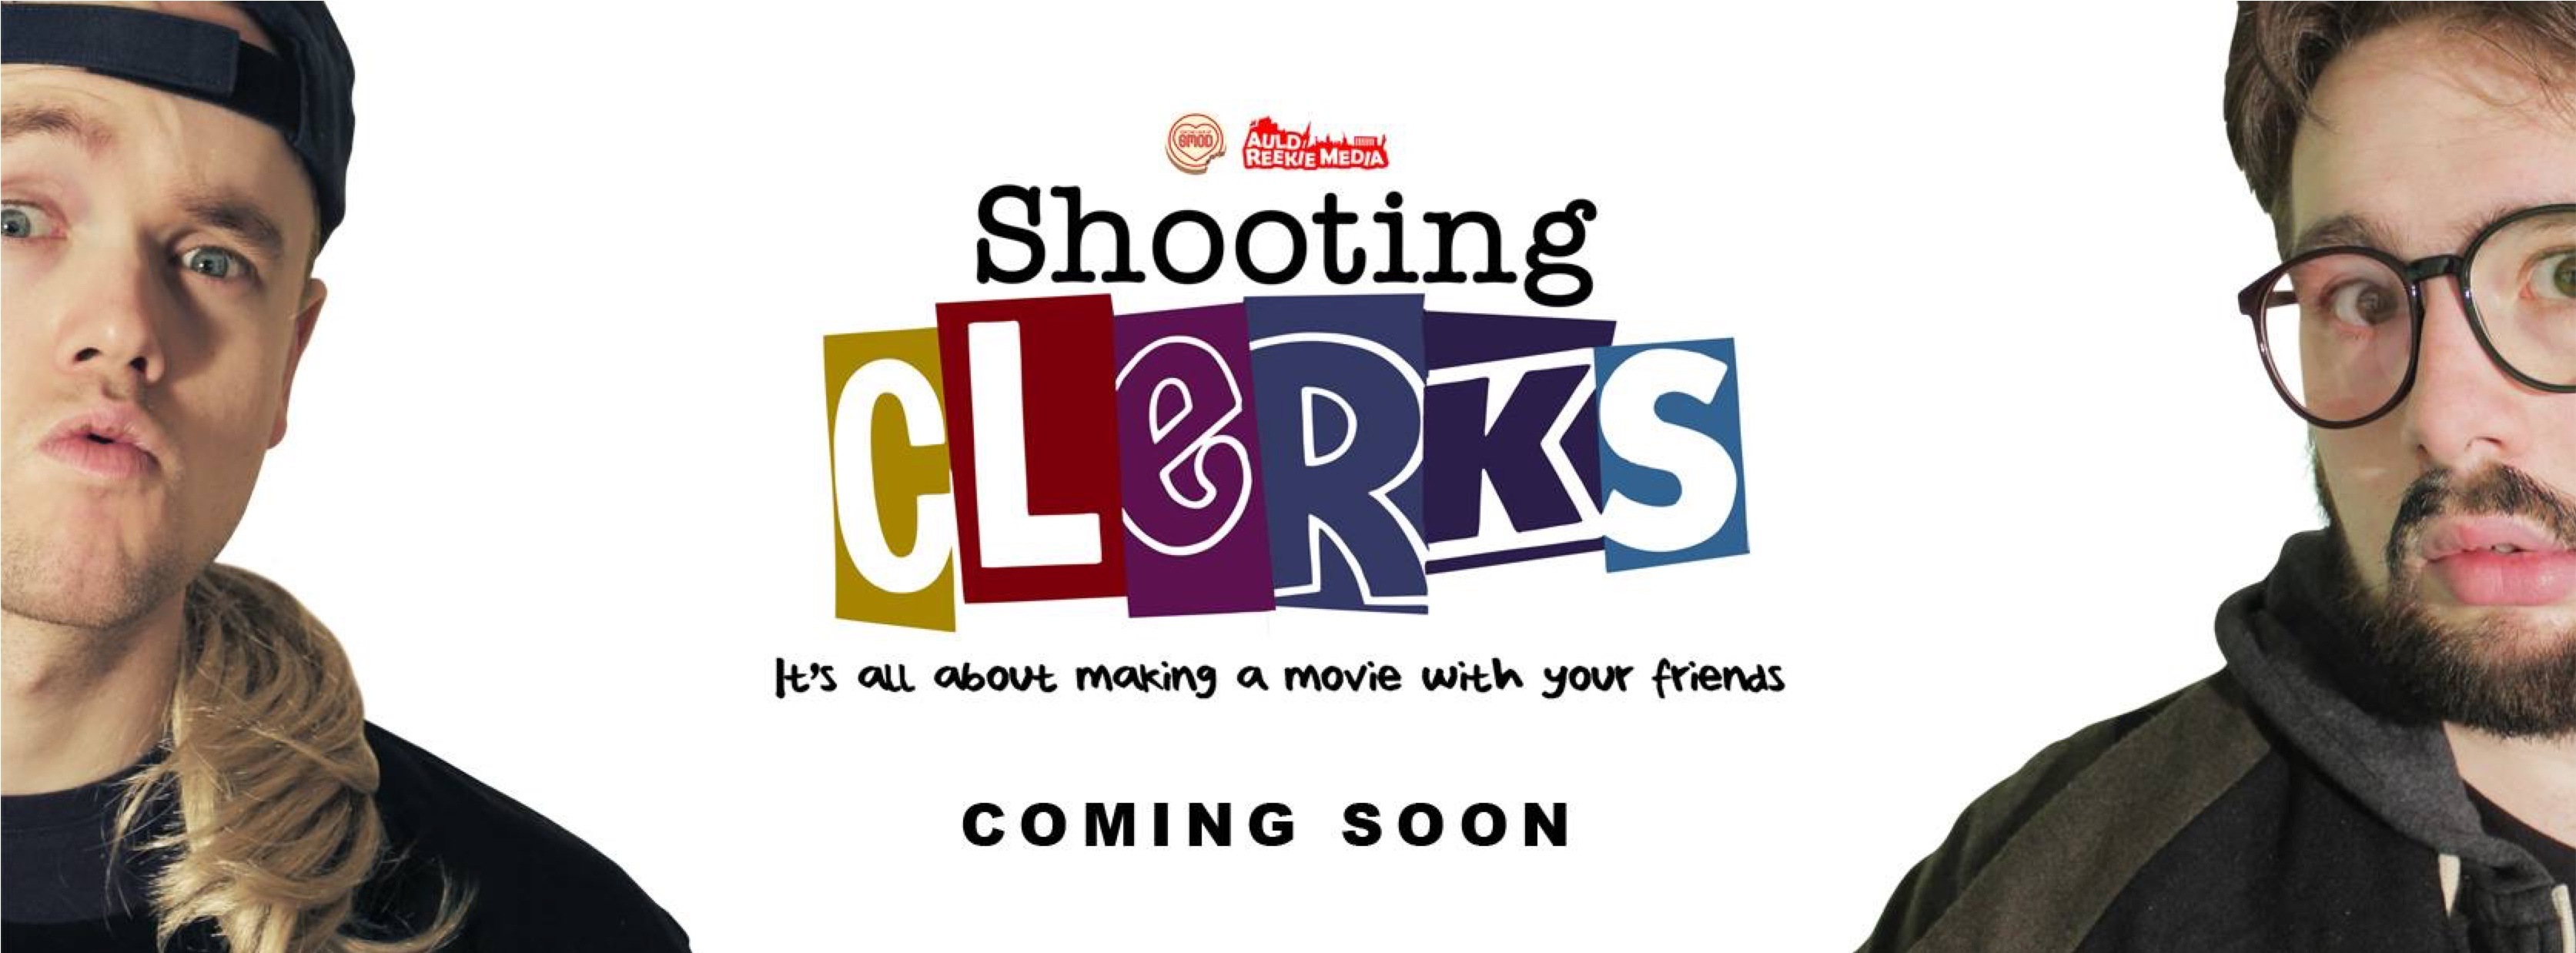 shooting clerks trailer making a movie with your friends